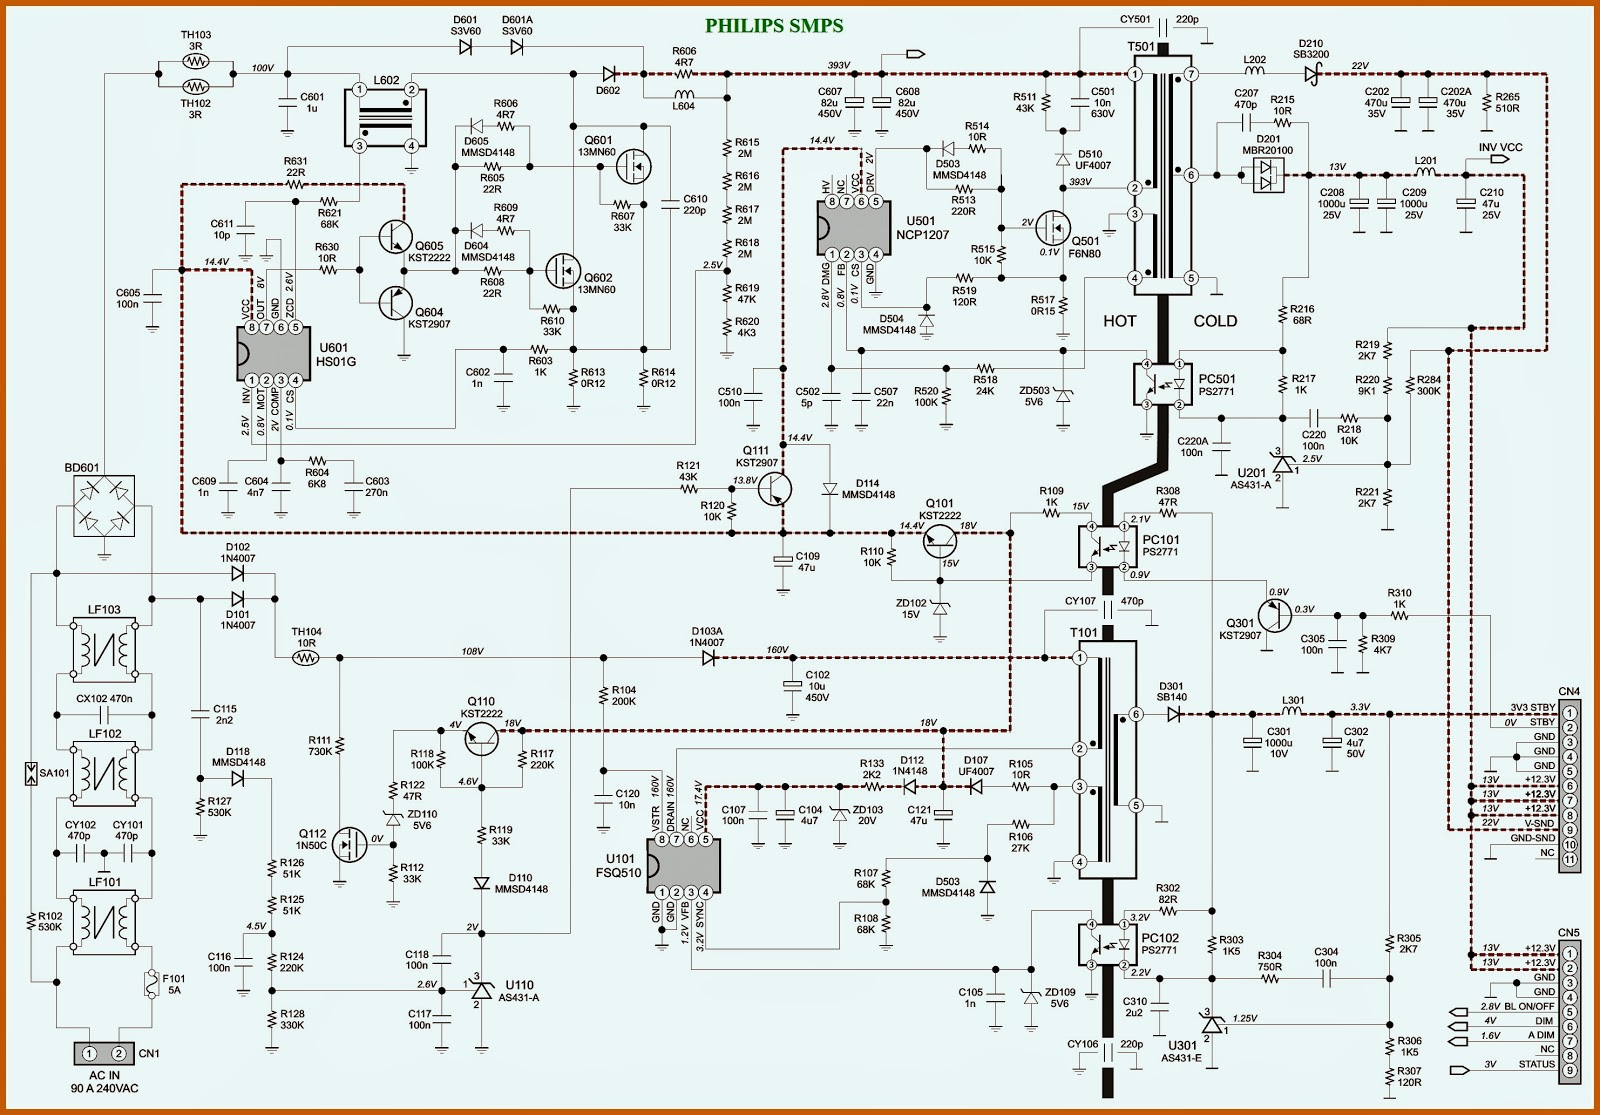 small resolution of samsung lcd tv diagram schema wiring diagrams surround sound speaker placement diagram 55 samsung tv wiring diagram